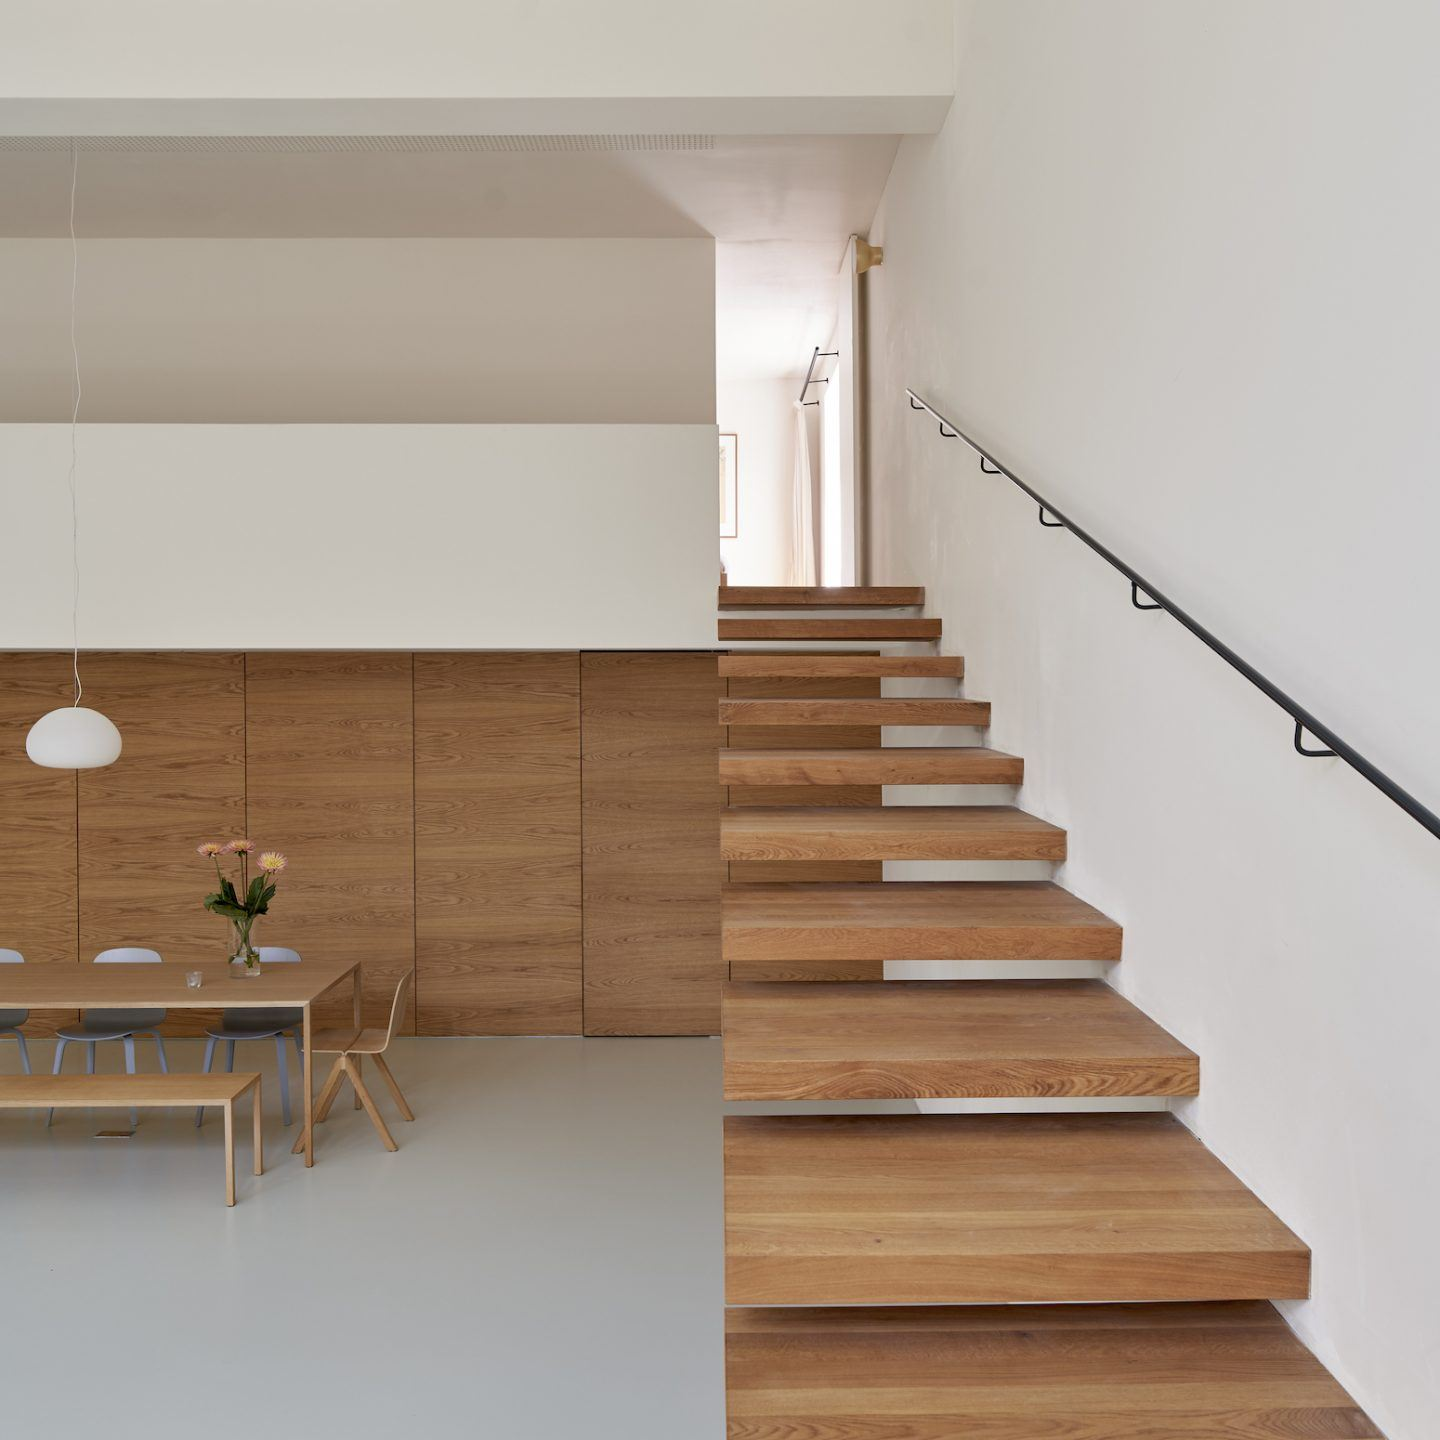 IGNANT-Architecture-Eklund-Terbeek-The-Gym-Loft-8